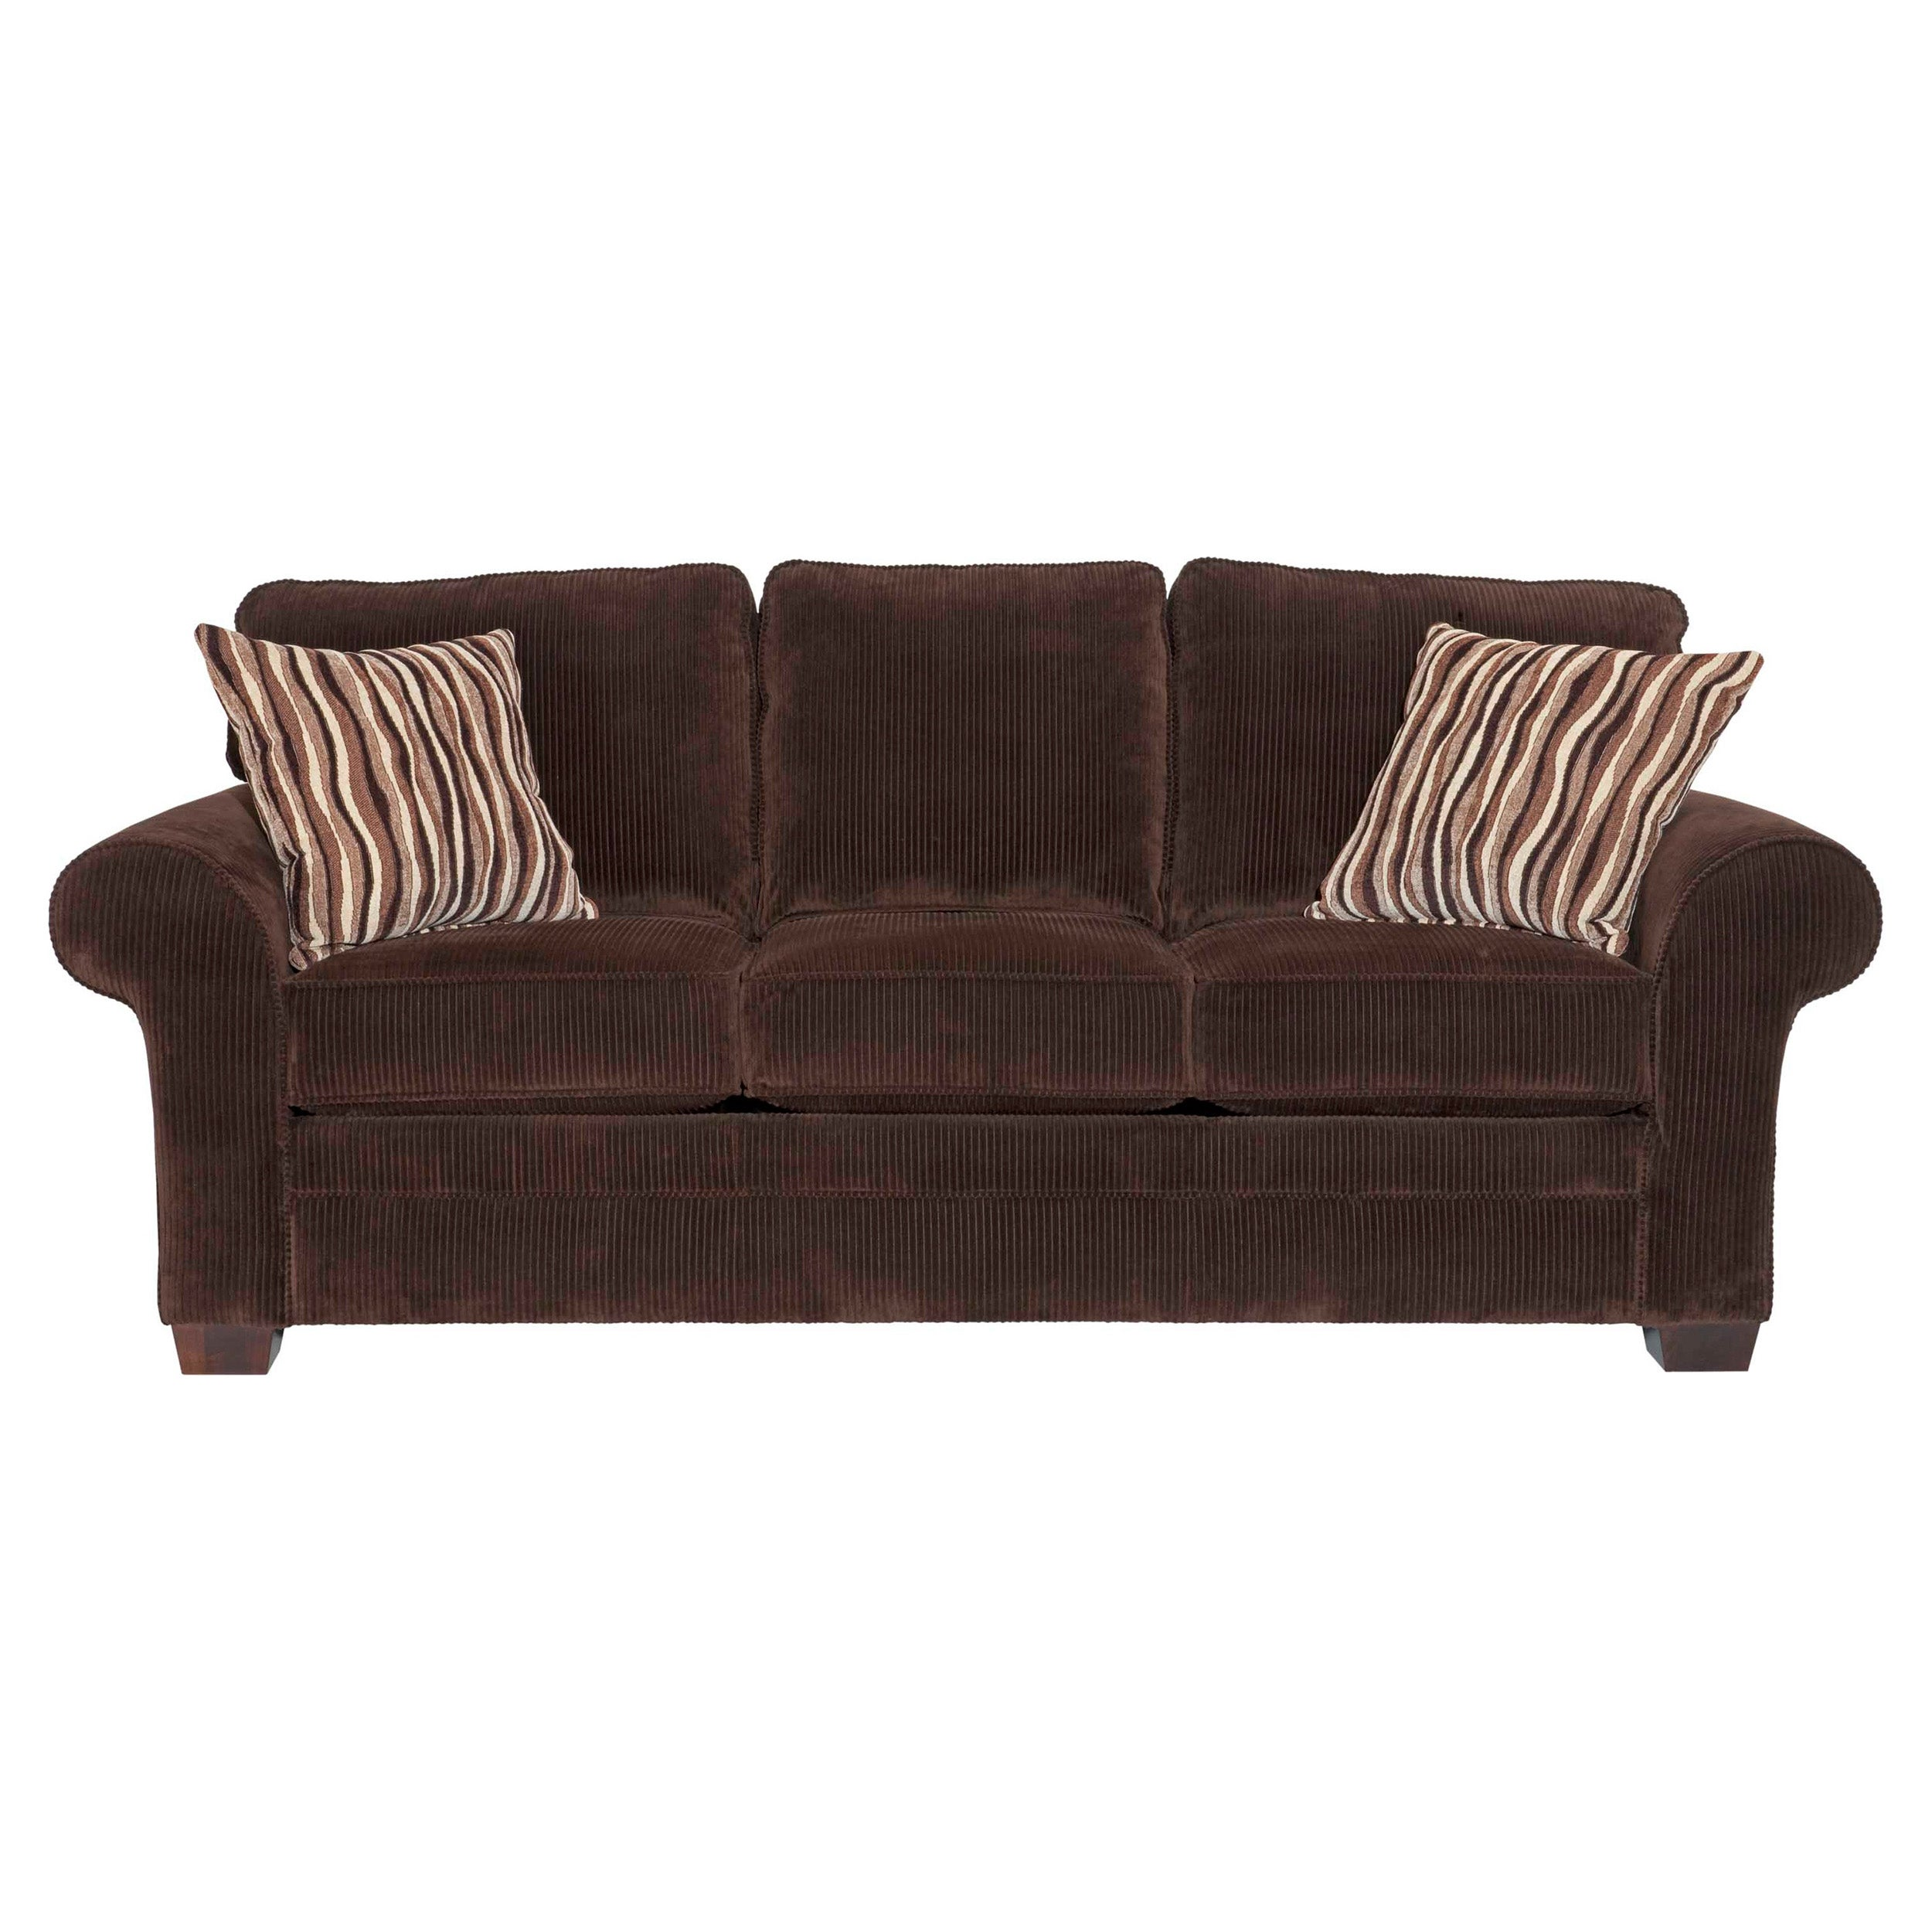 Broyhill Zoey Dark Chocolate Queen Sofa Sleeper Free